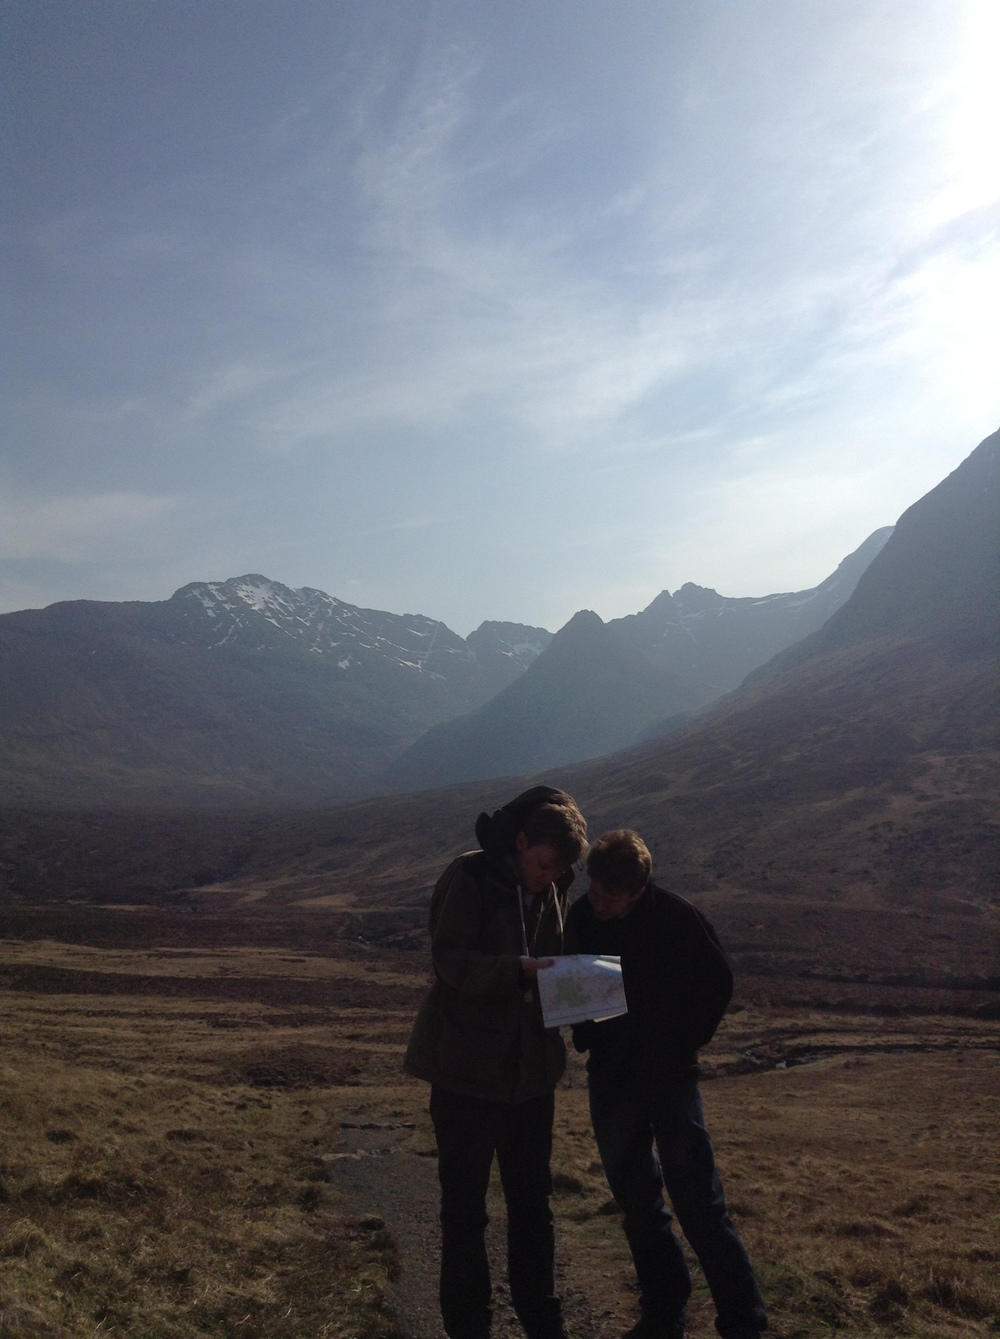 Ed and Peter, my abductors, finding the Fairy Pools on our map.